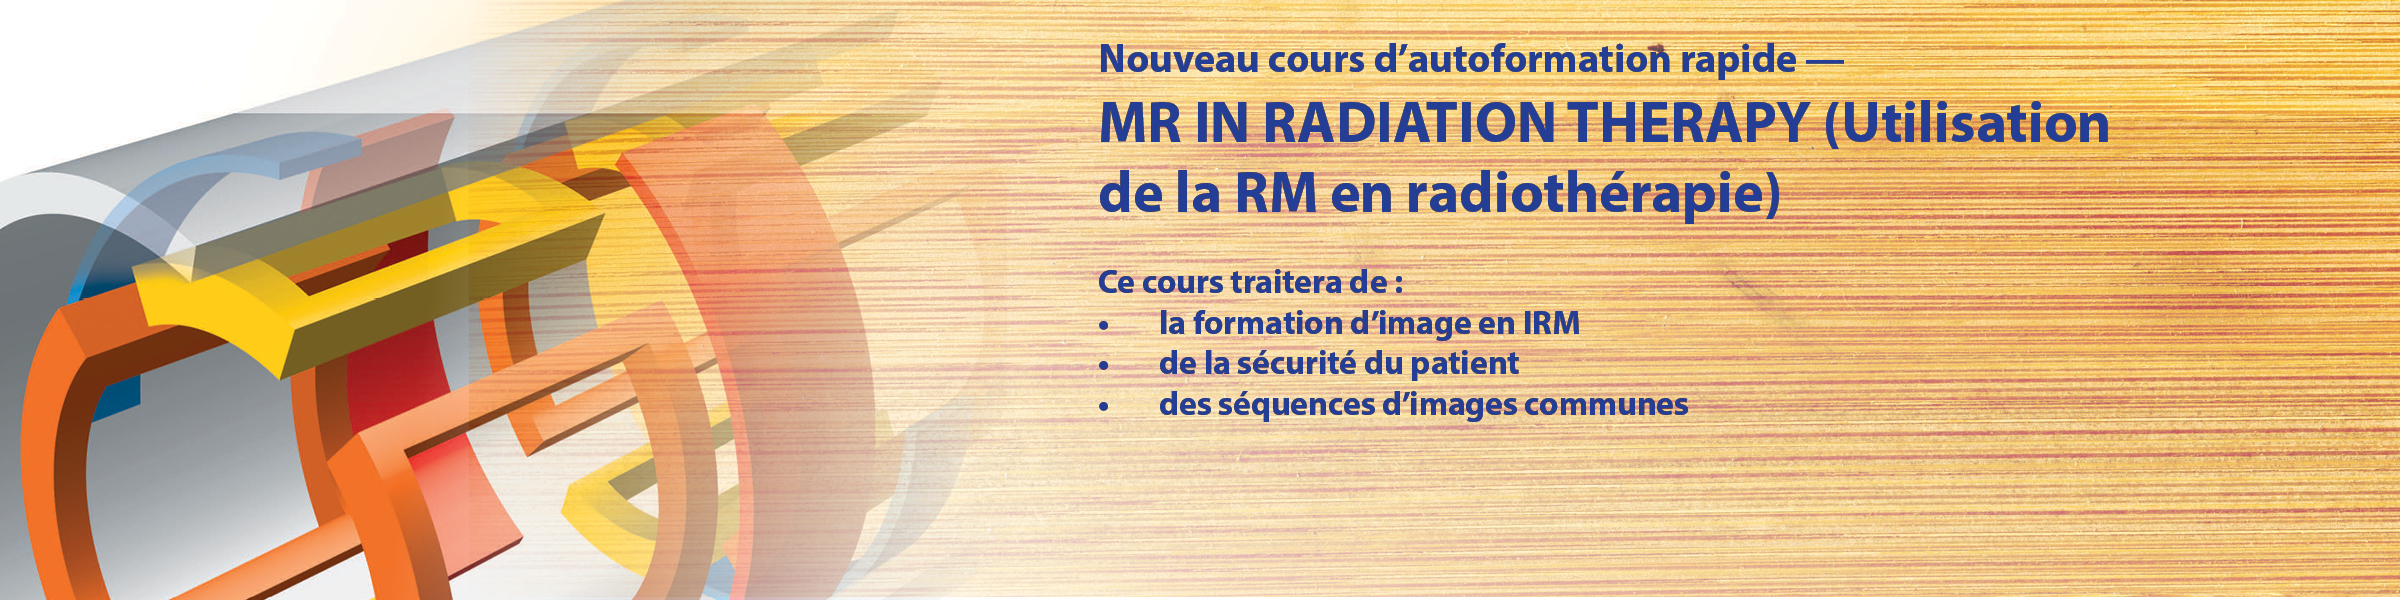 New-QSS-MR-In-Radiation-Therapy_French